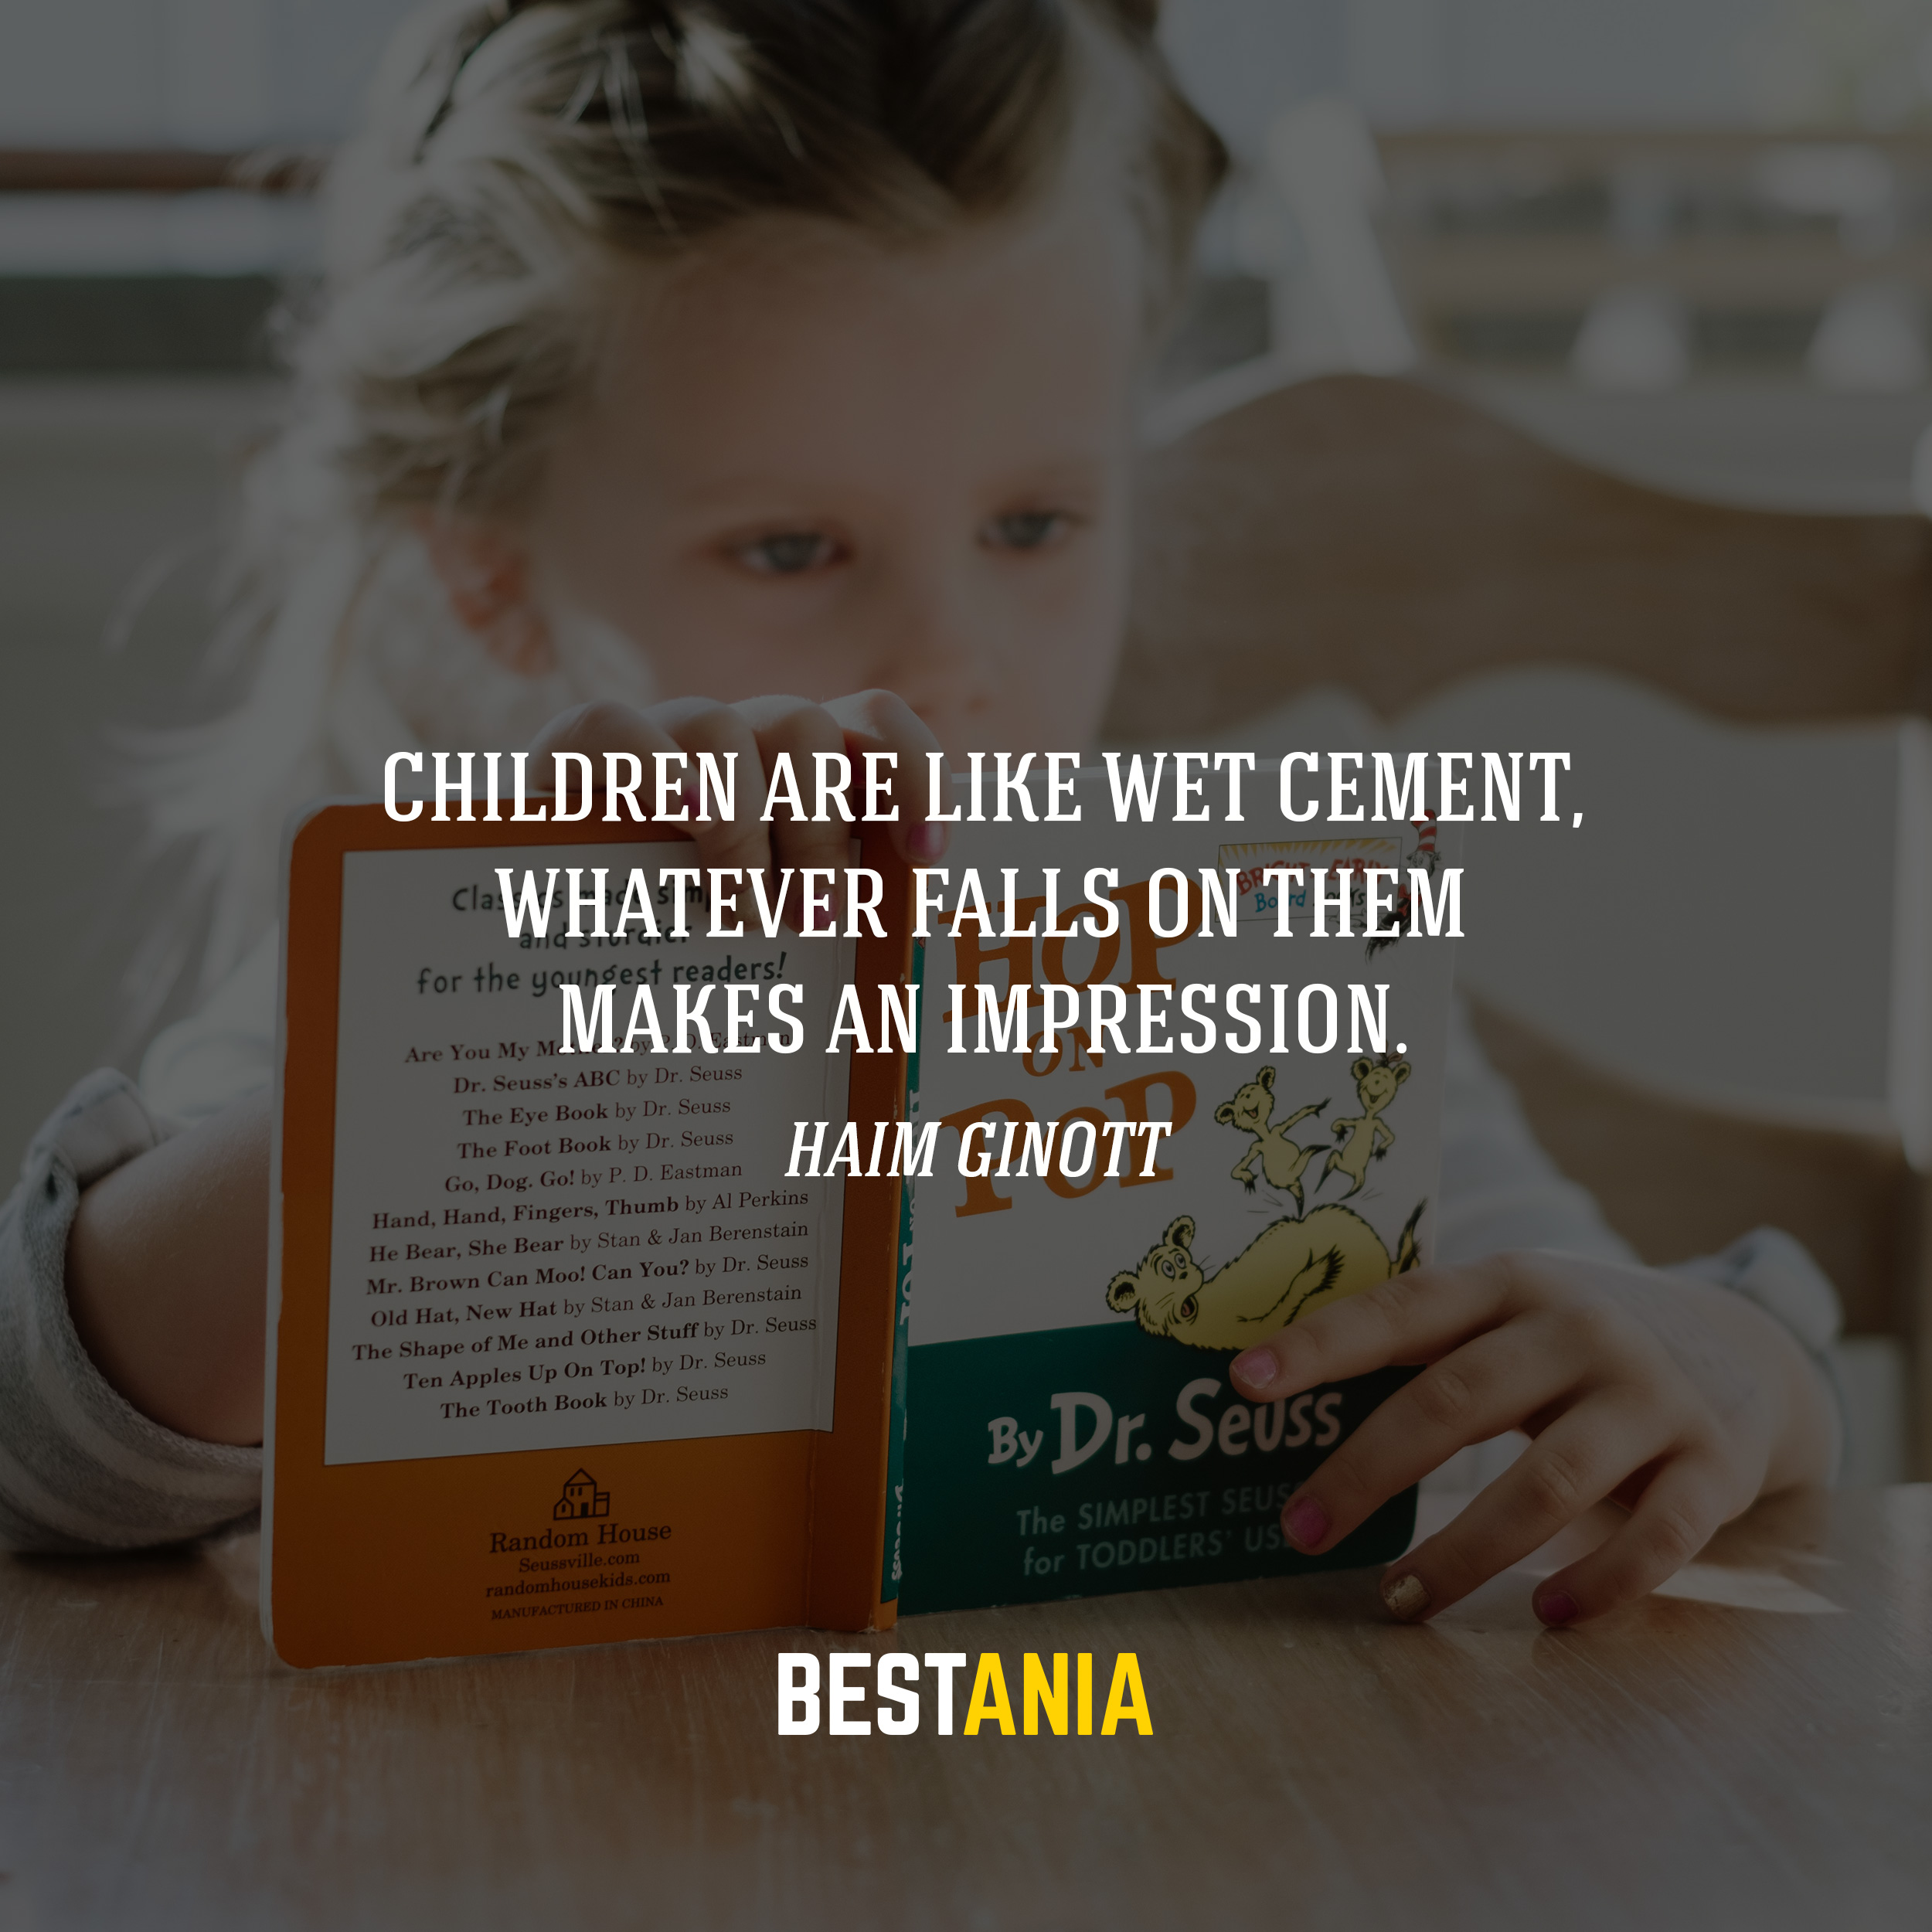 Children are like wet cement, whatever falls on them makes an impression. Haim Ginott